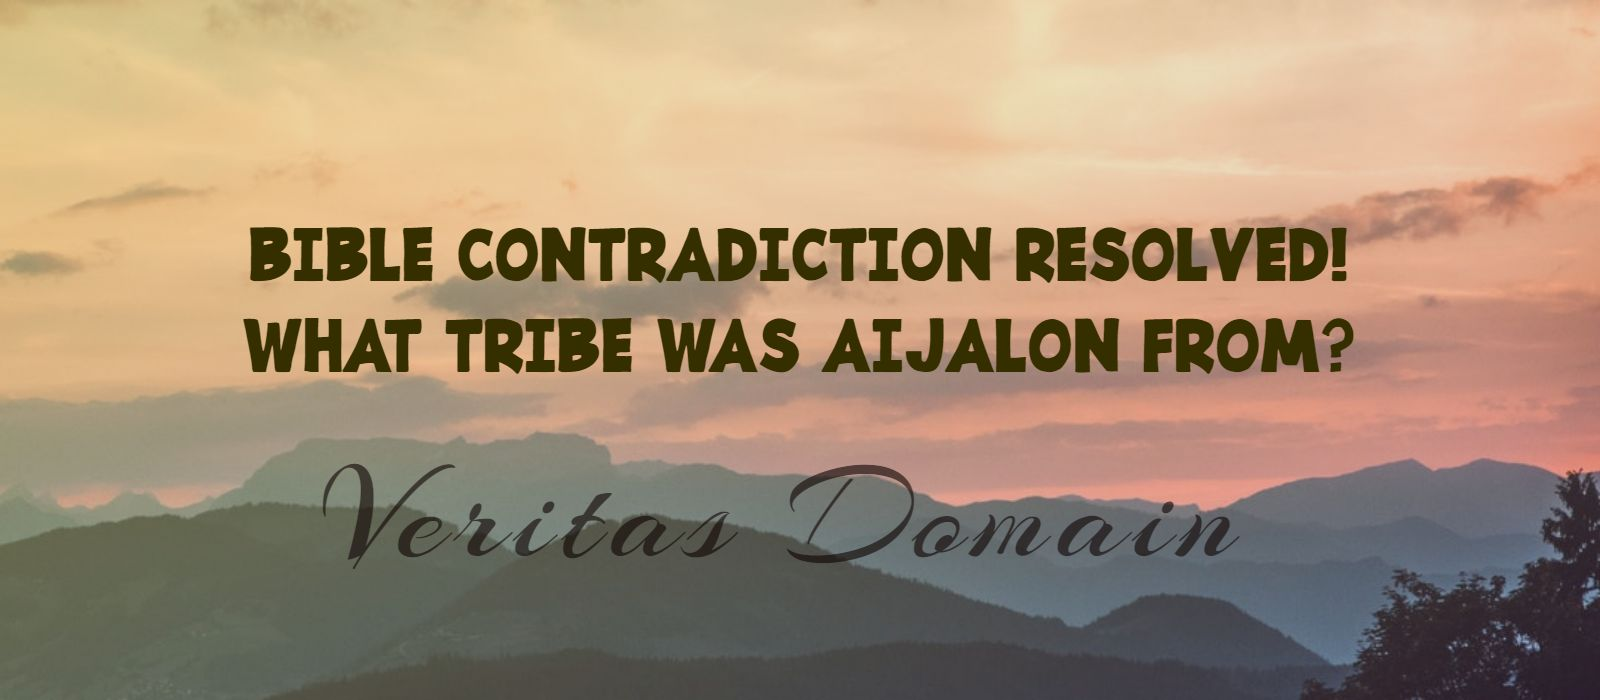 Bible Contradiction? What Tribe Was Aijalon From?